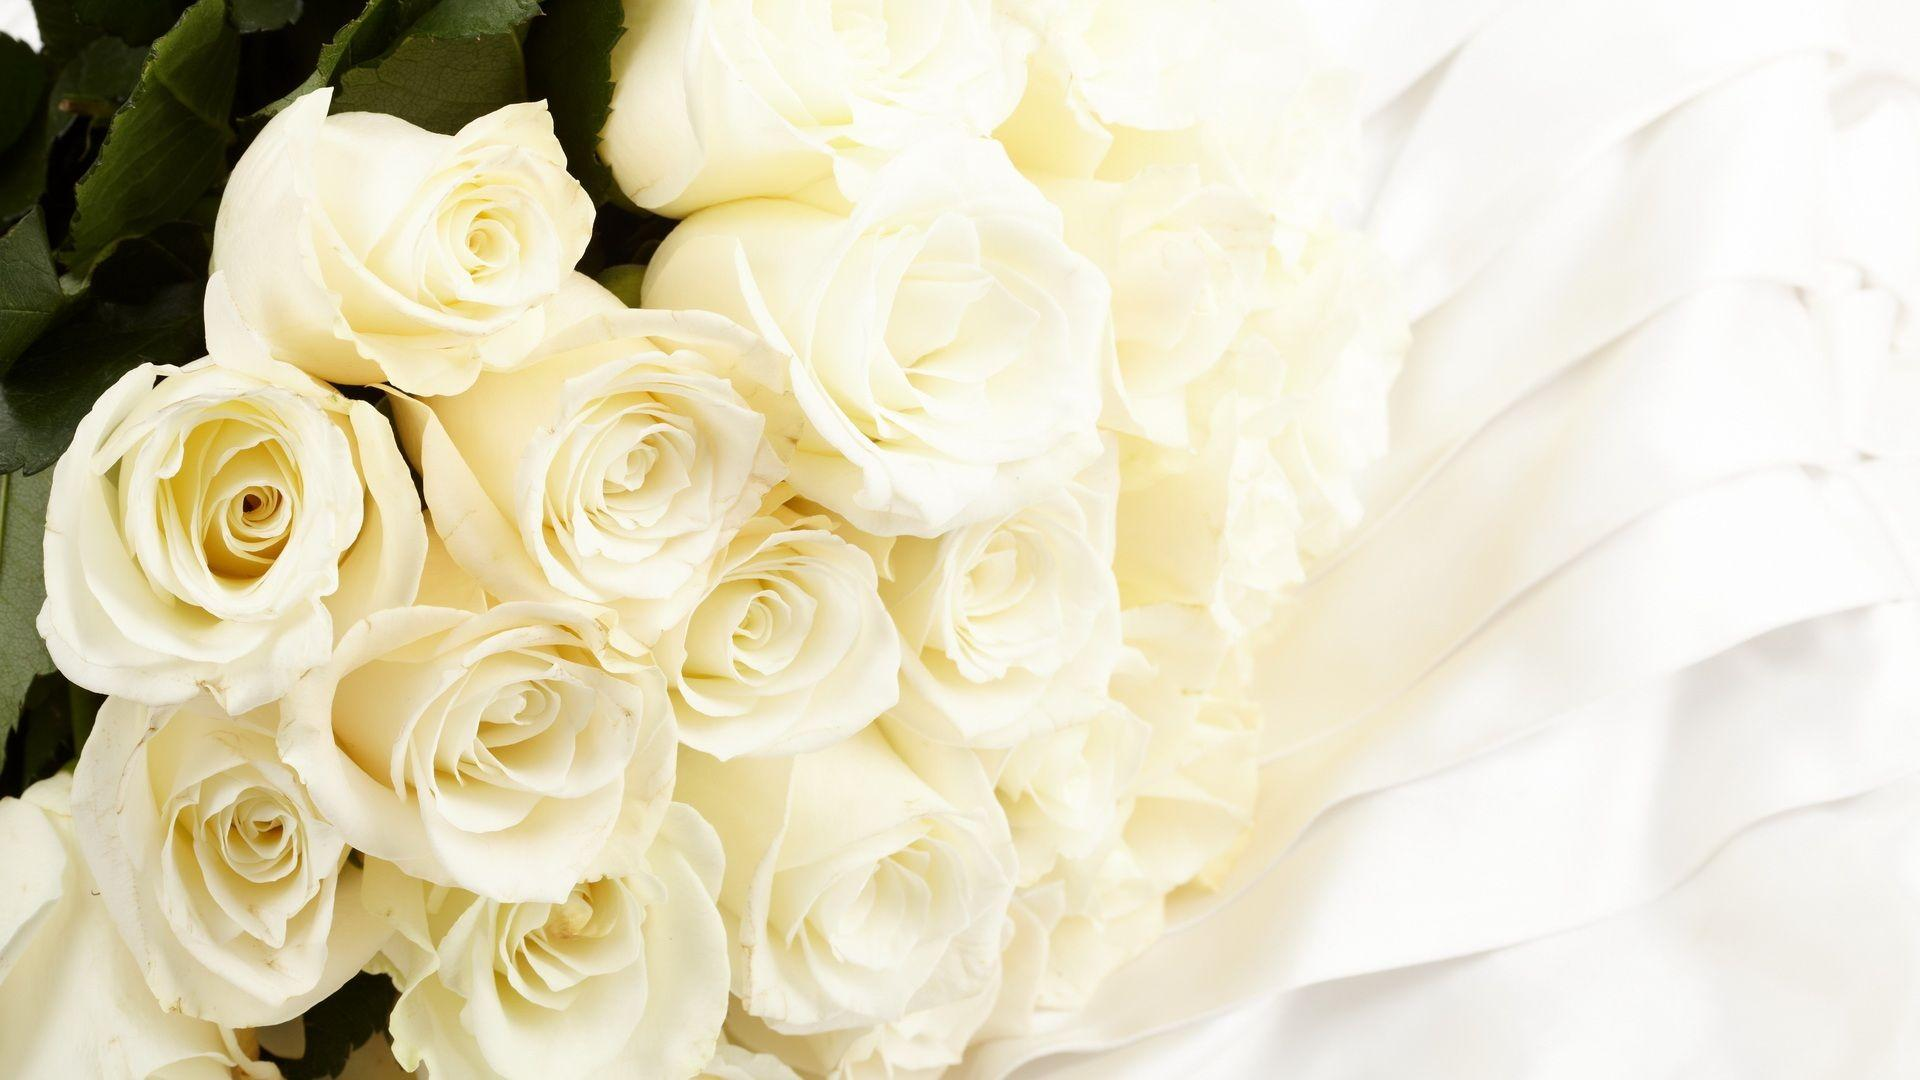 White Rose Wallpapers & Pictures - Bunch Of White Roses , HD Wallpaper & Backgrounds